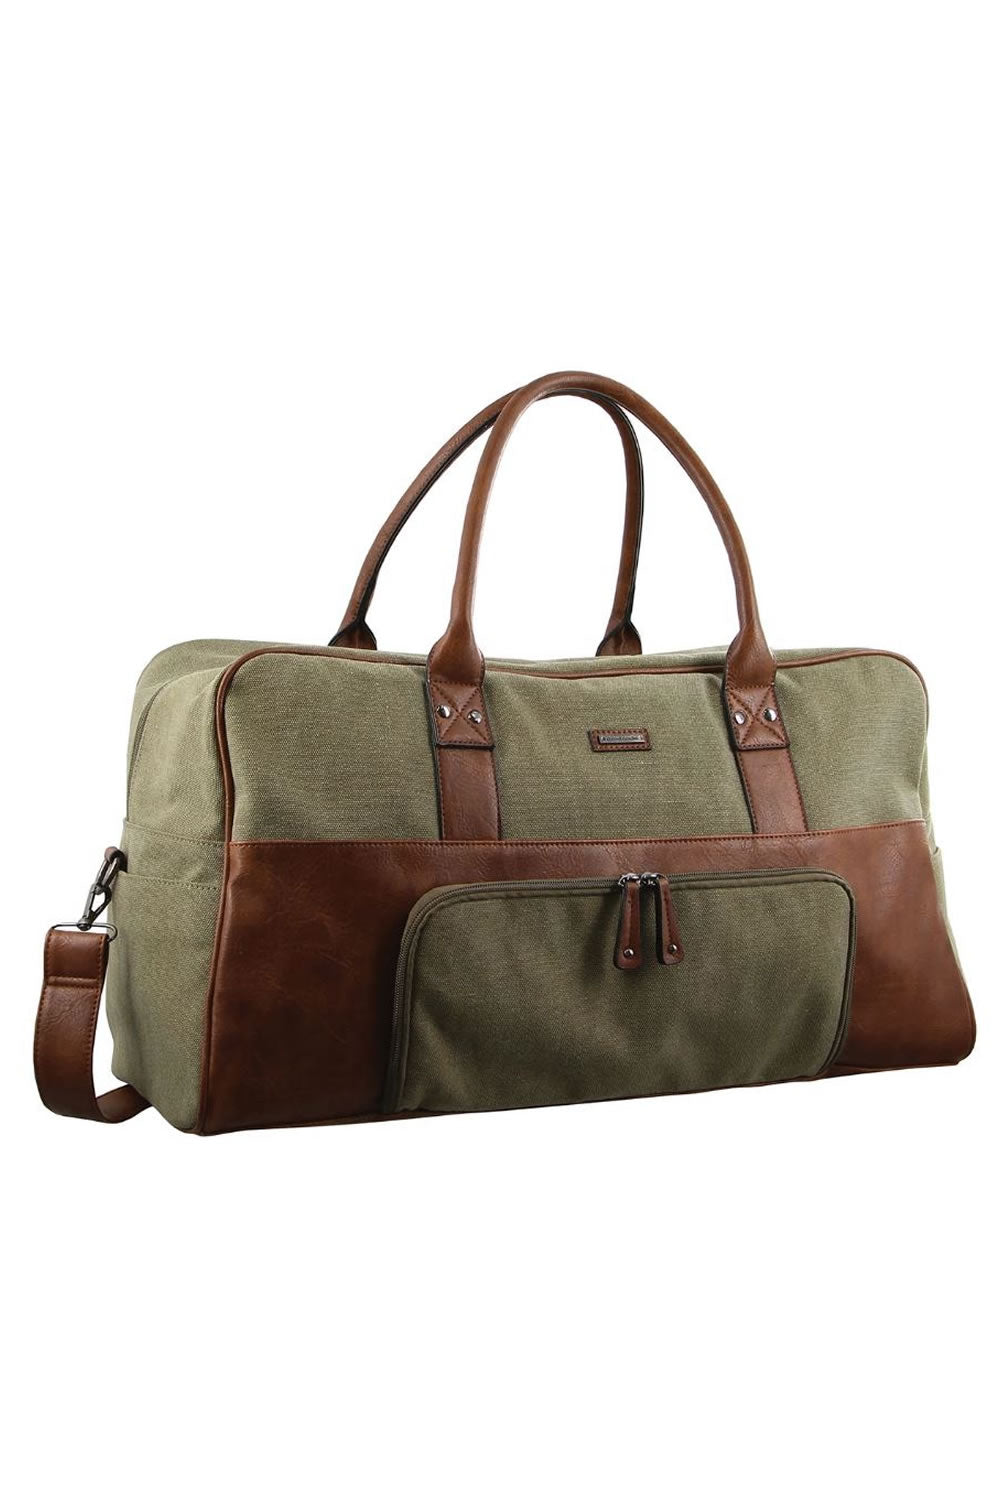 Pierre Cardin Overnight Bag